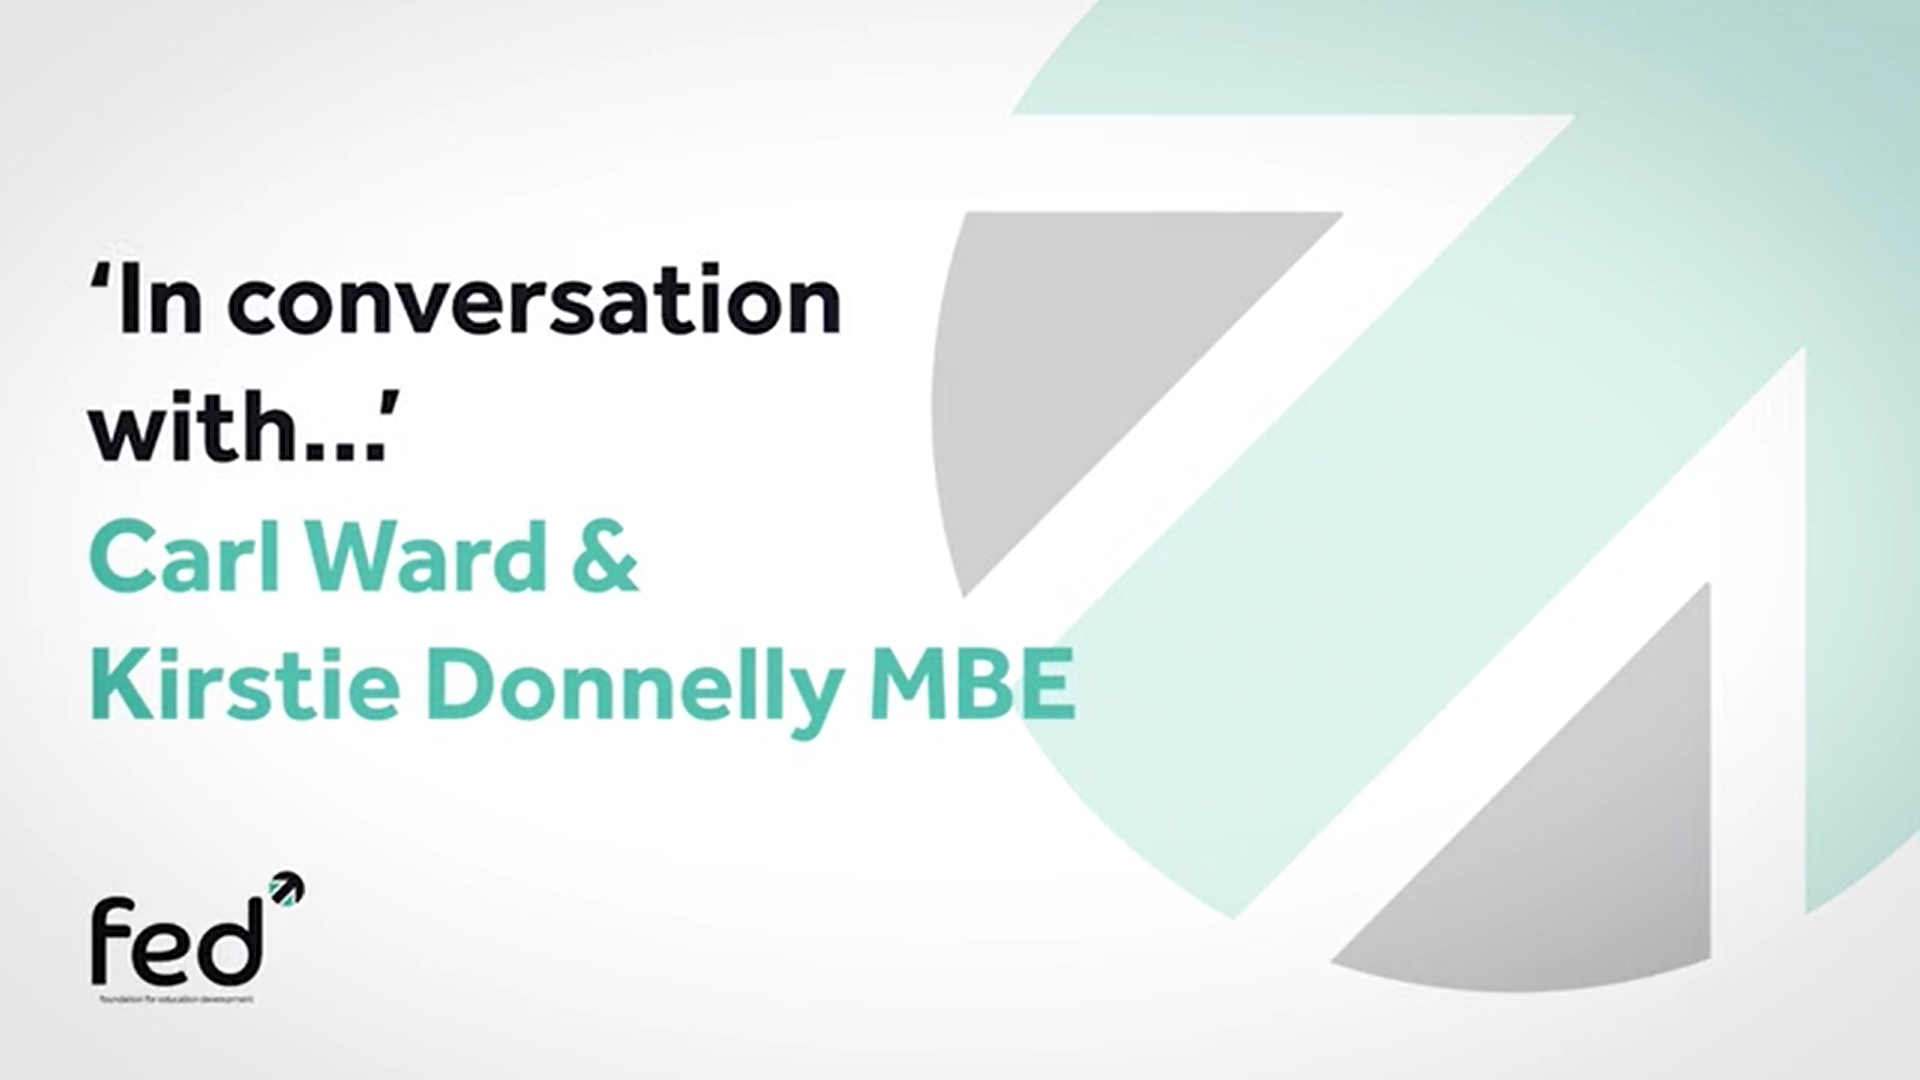 Kirsty Donnelly MBE 'In Conversation With' Carl Ward